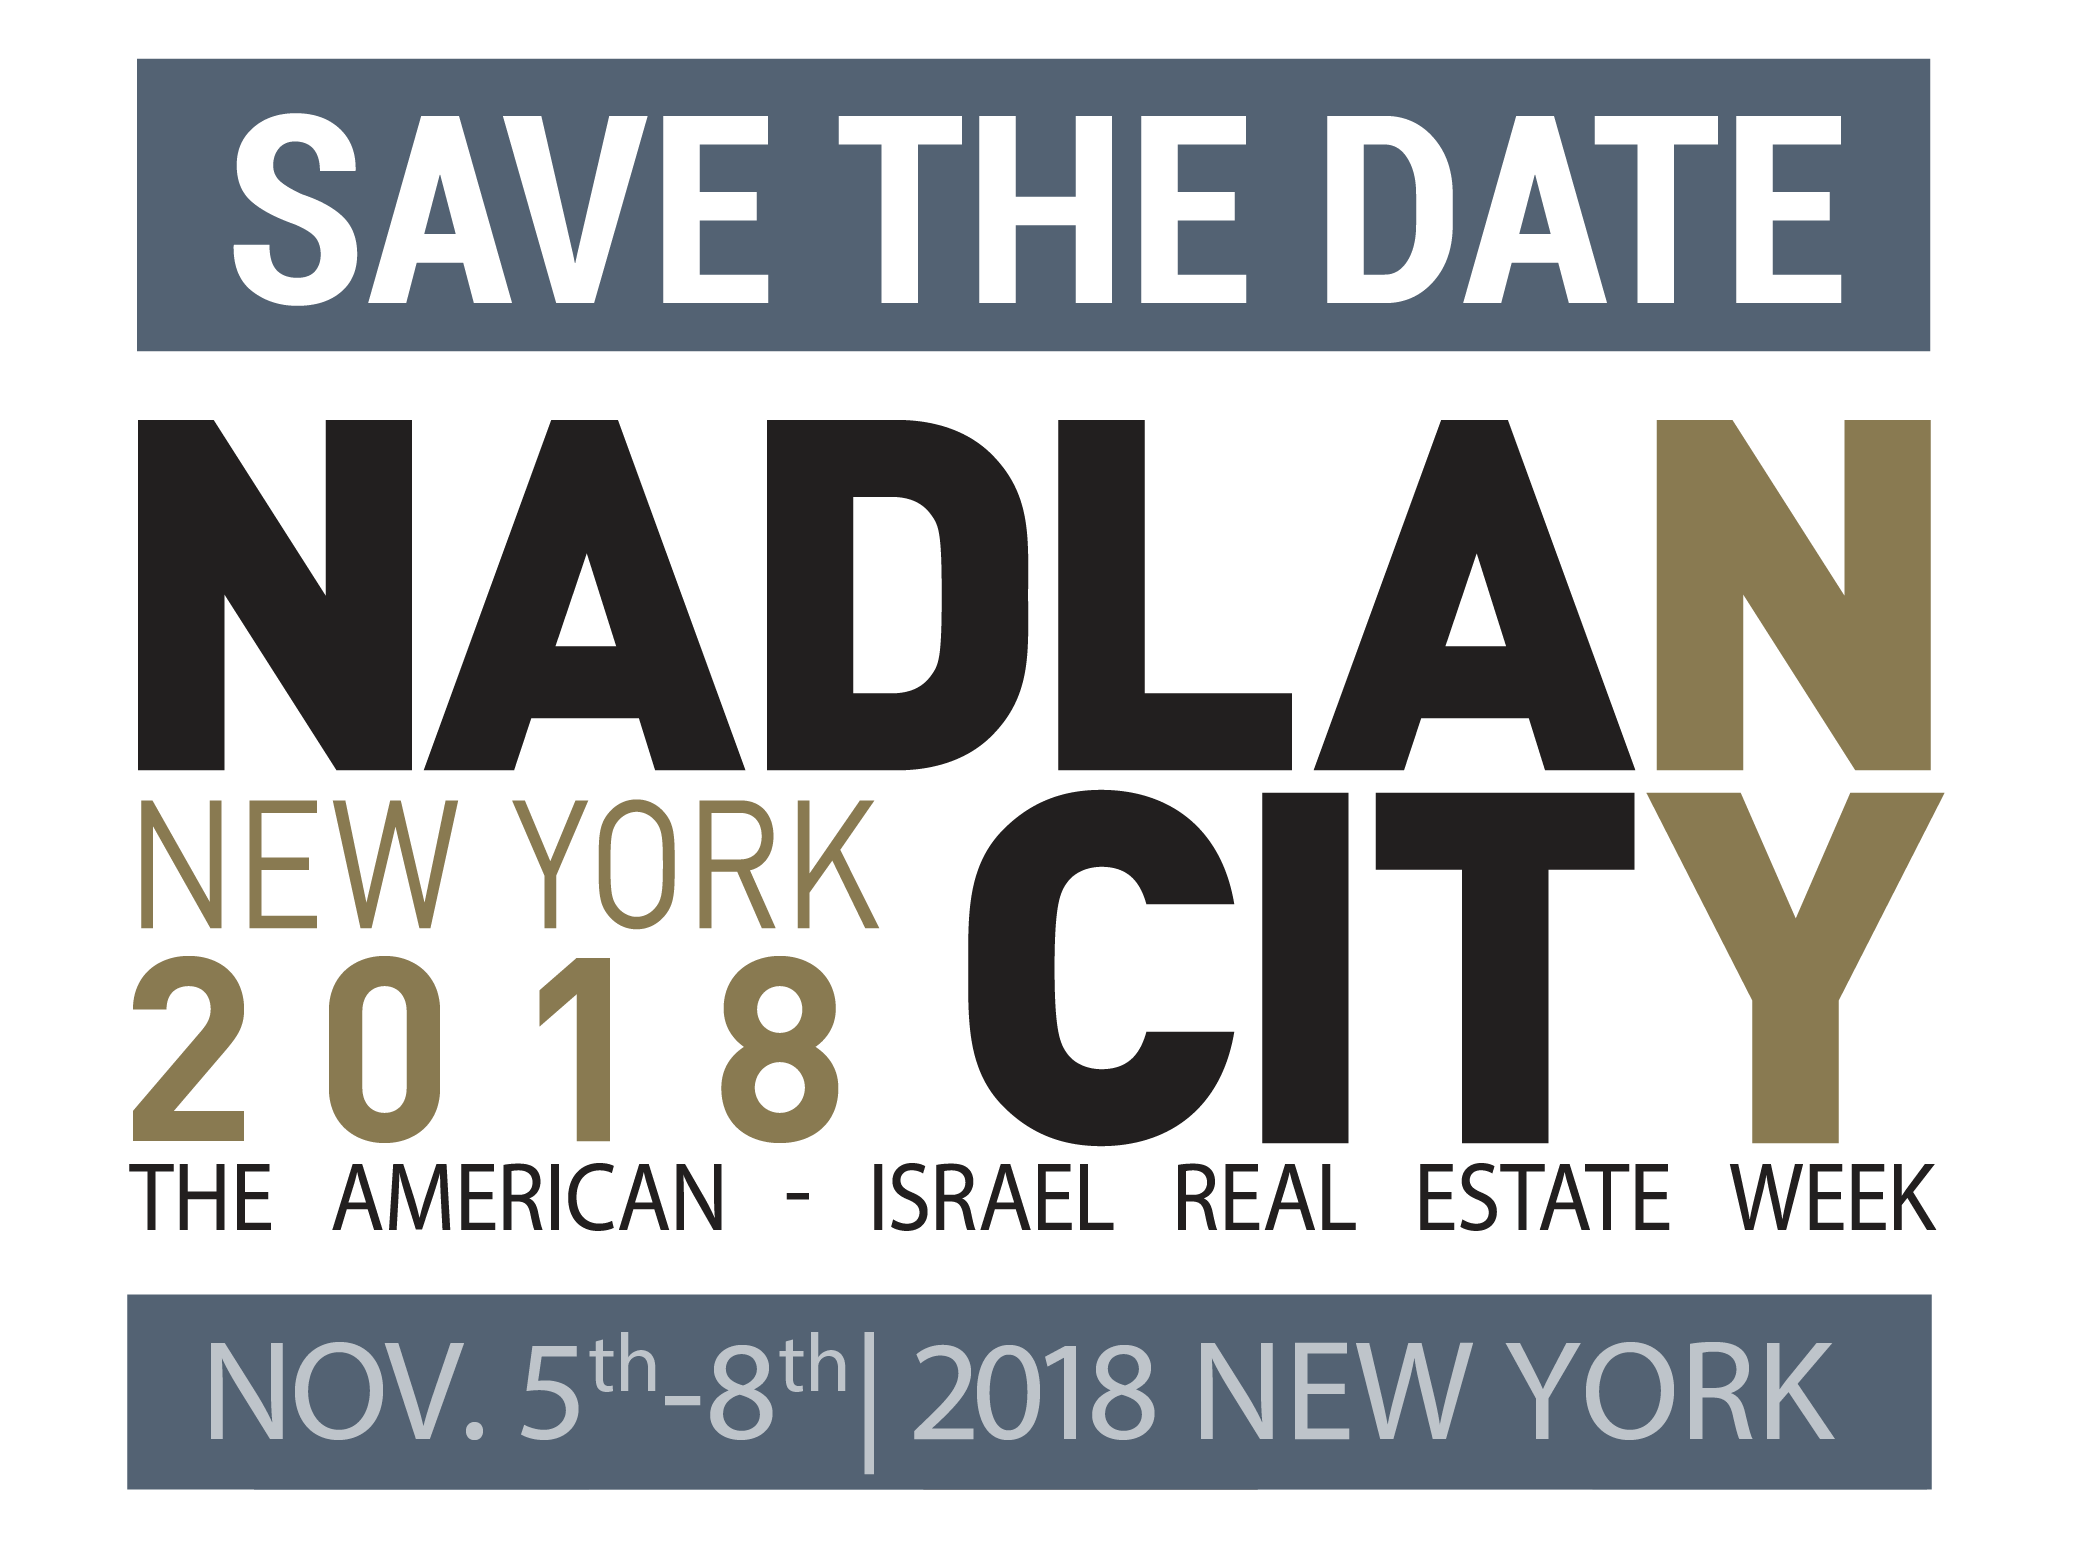 SAVE THE DATE NY18